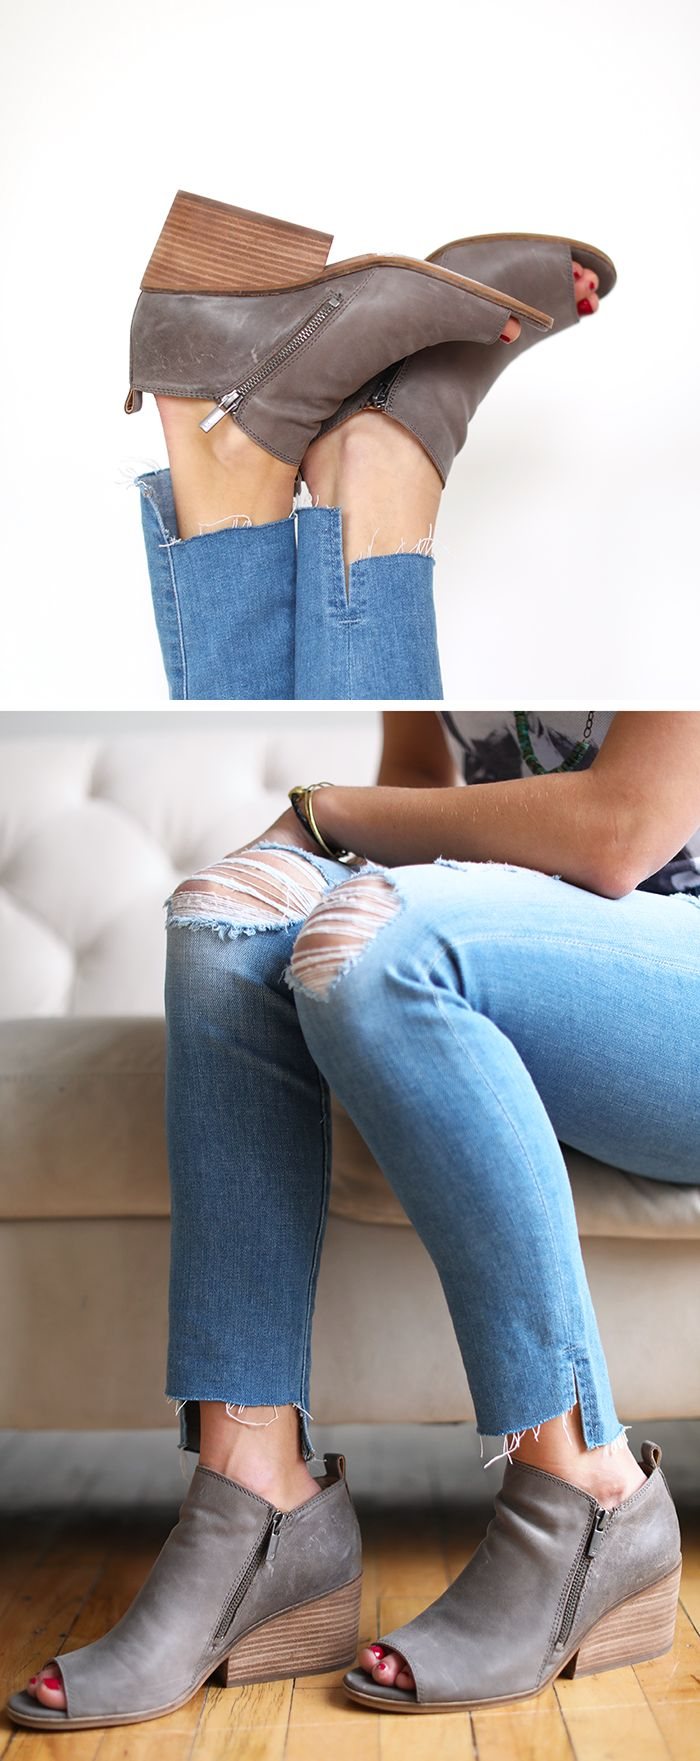 Spring has sprung! Here's 3 pairs of jeans for the fit girl. They are all a mid-rise fit to accommodate that booty and those thighs with a lighter wash, perfect for the transition from winter to spring.